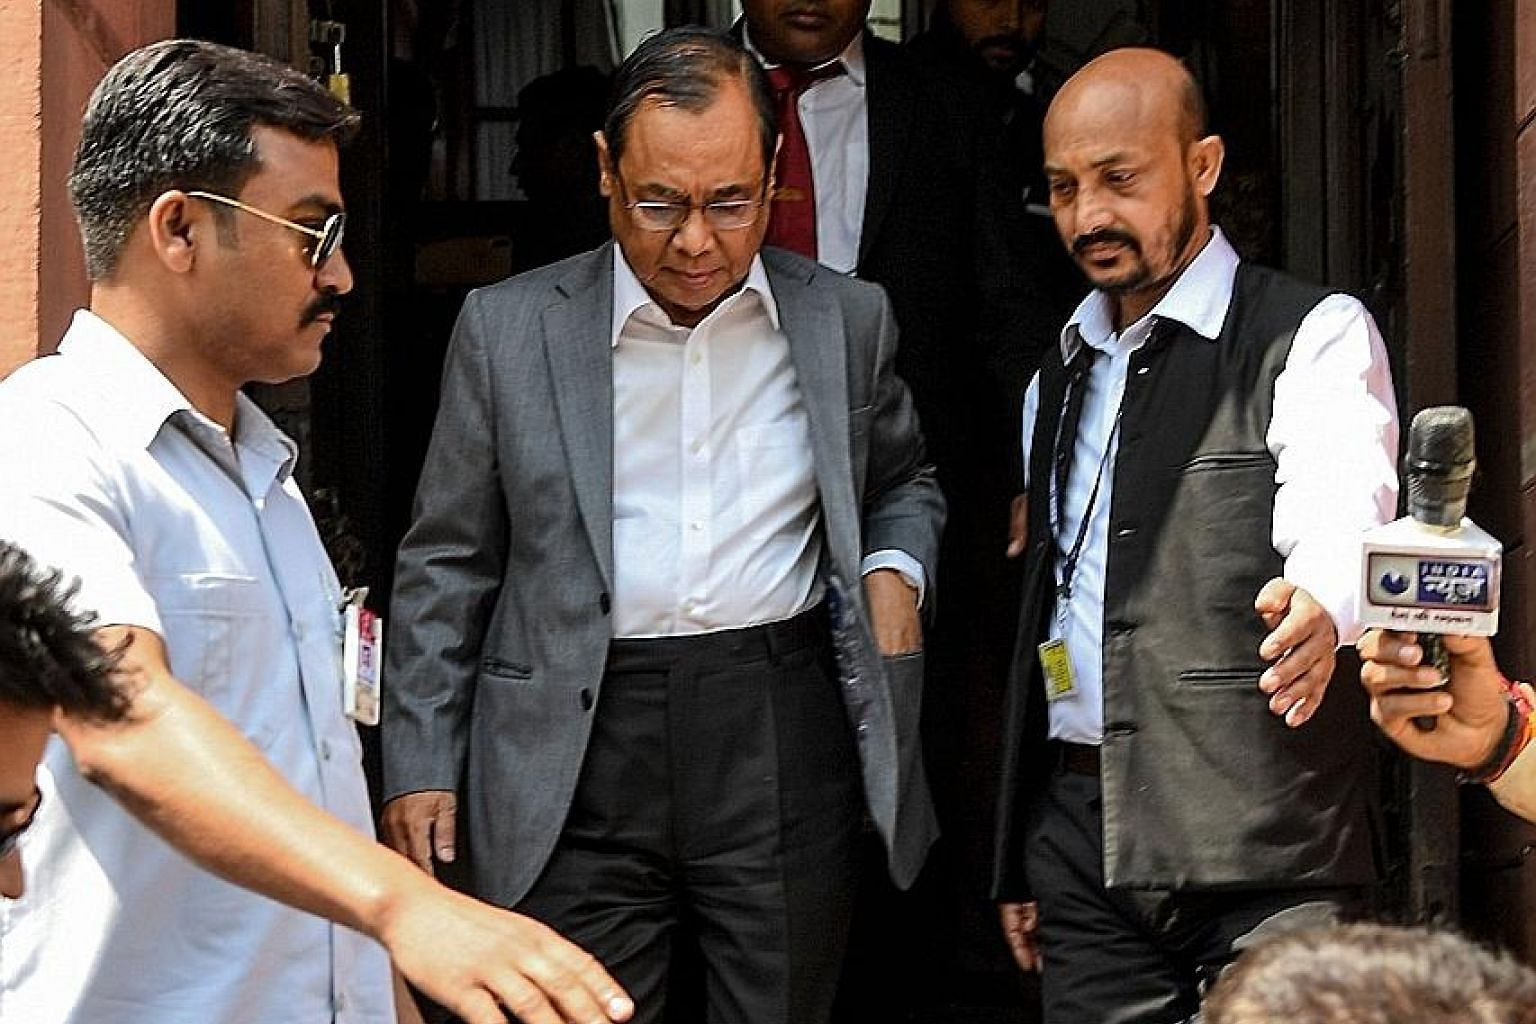 India's former Chief Justice Ranjan Gogoi (centre) leaving Parliament in New Delhi yesterday after taking his oath as a member of the Rajya Sabha or Upper House.